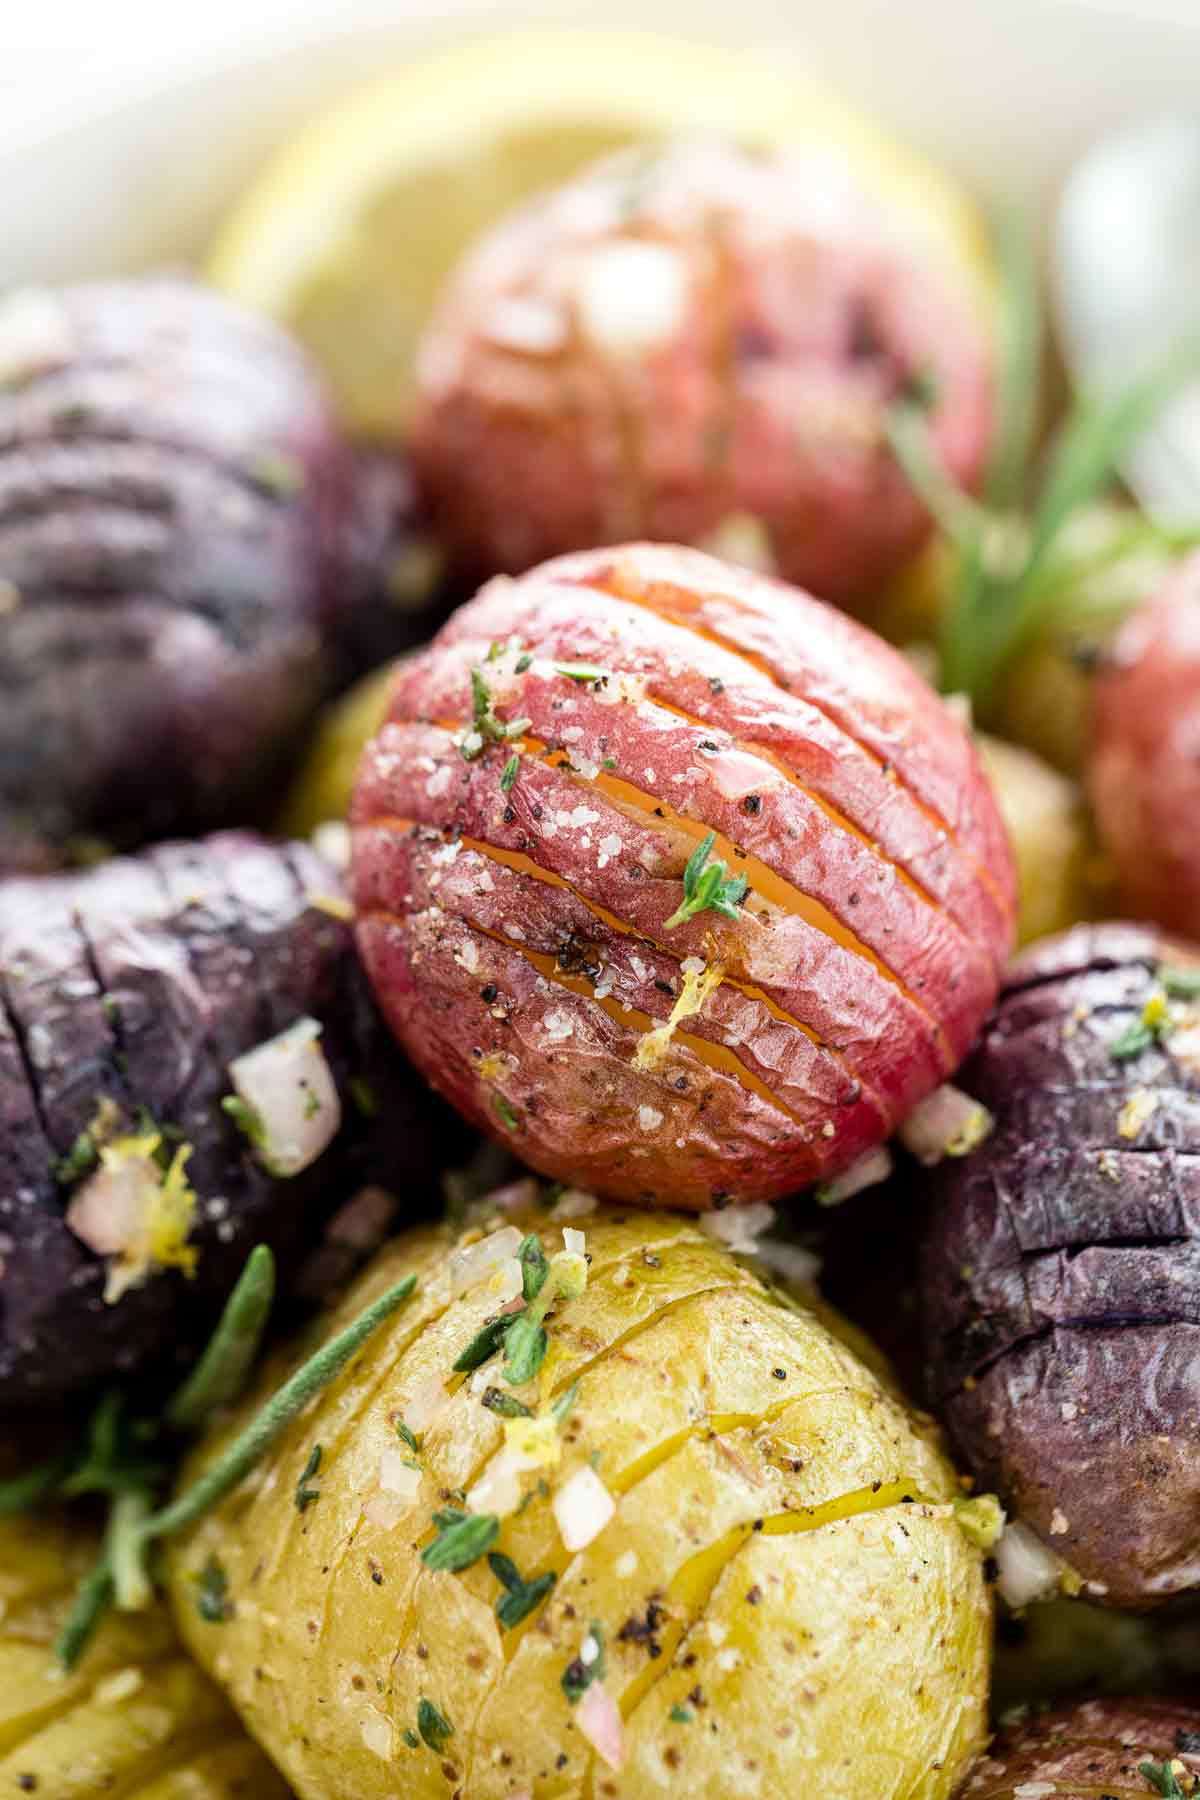 Closeup photo of seasoned Hasselback potatoes showing slices